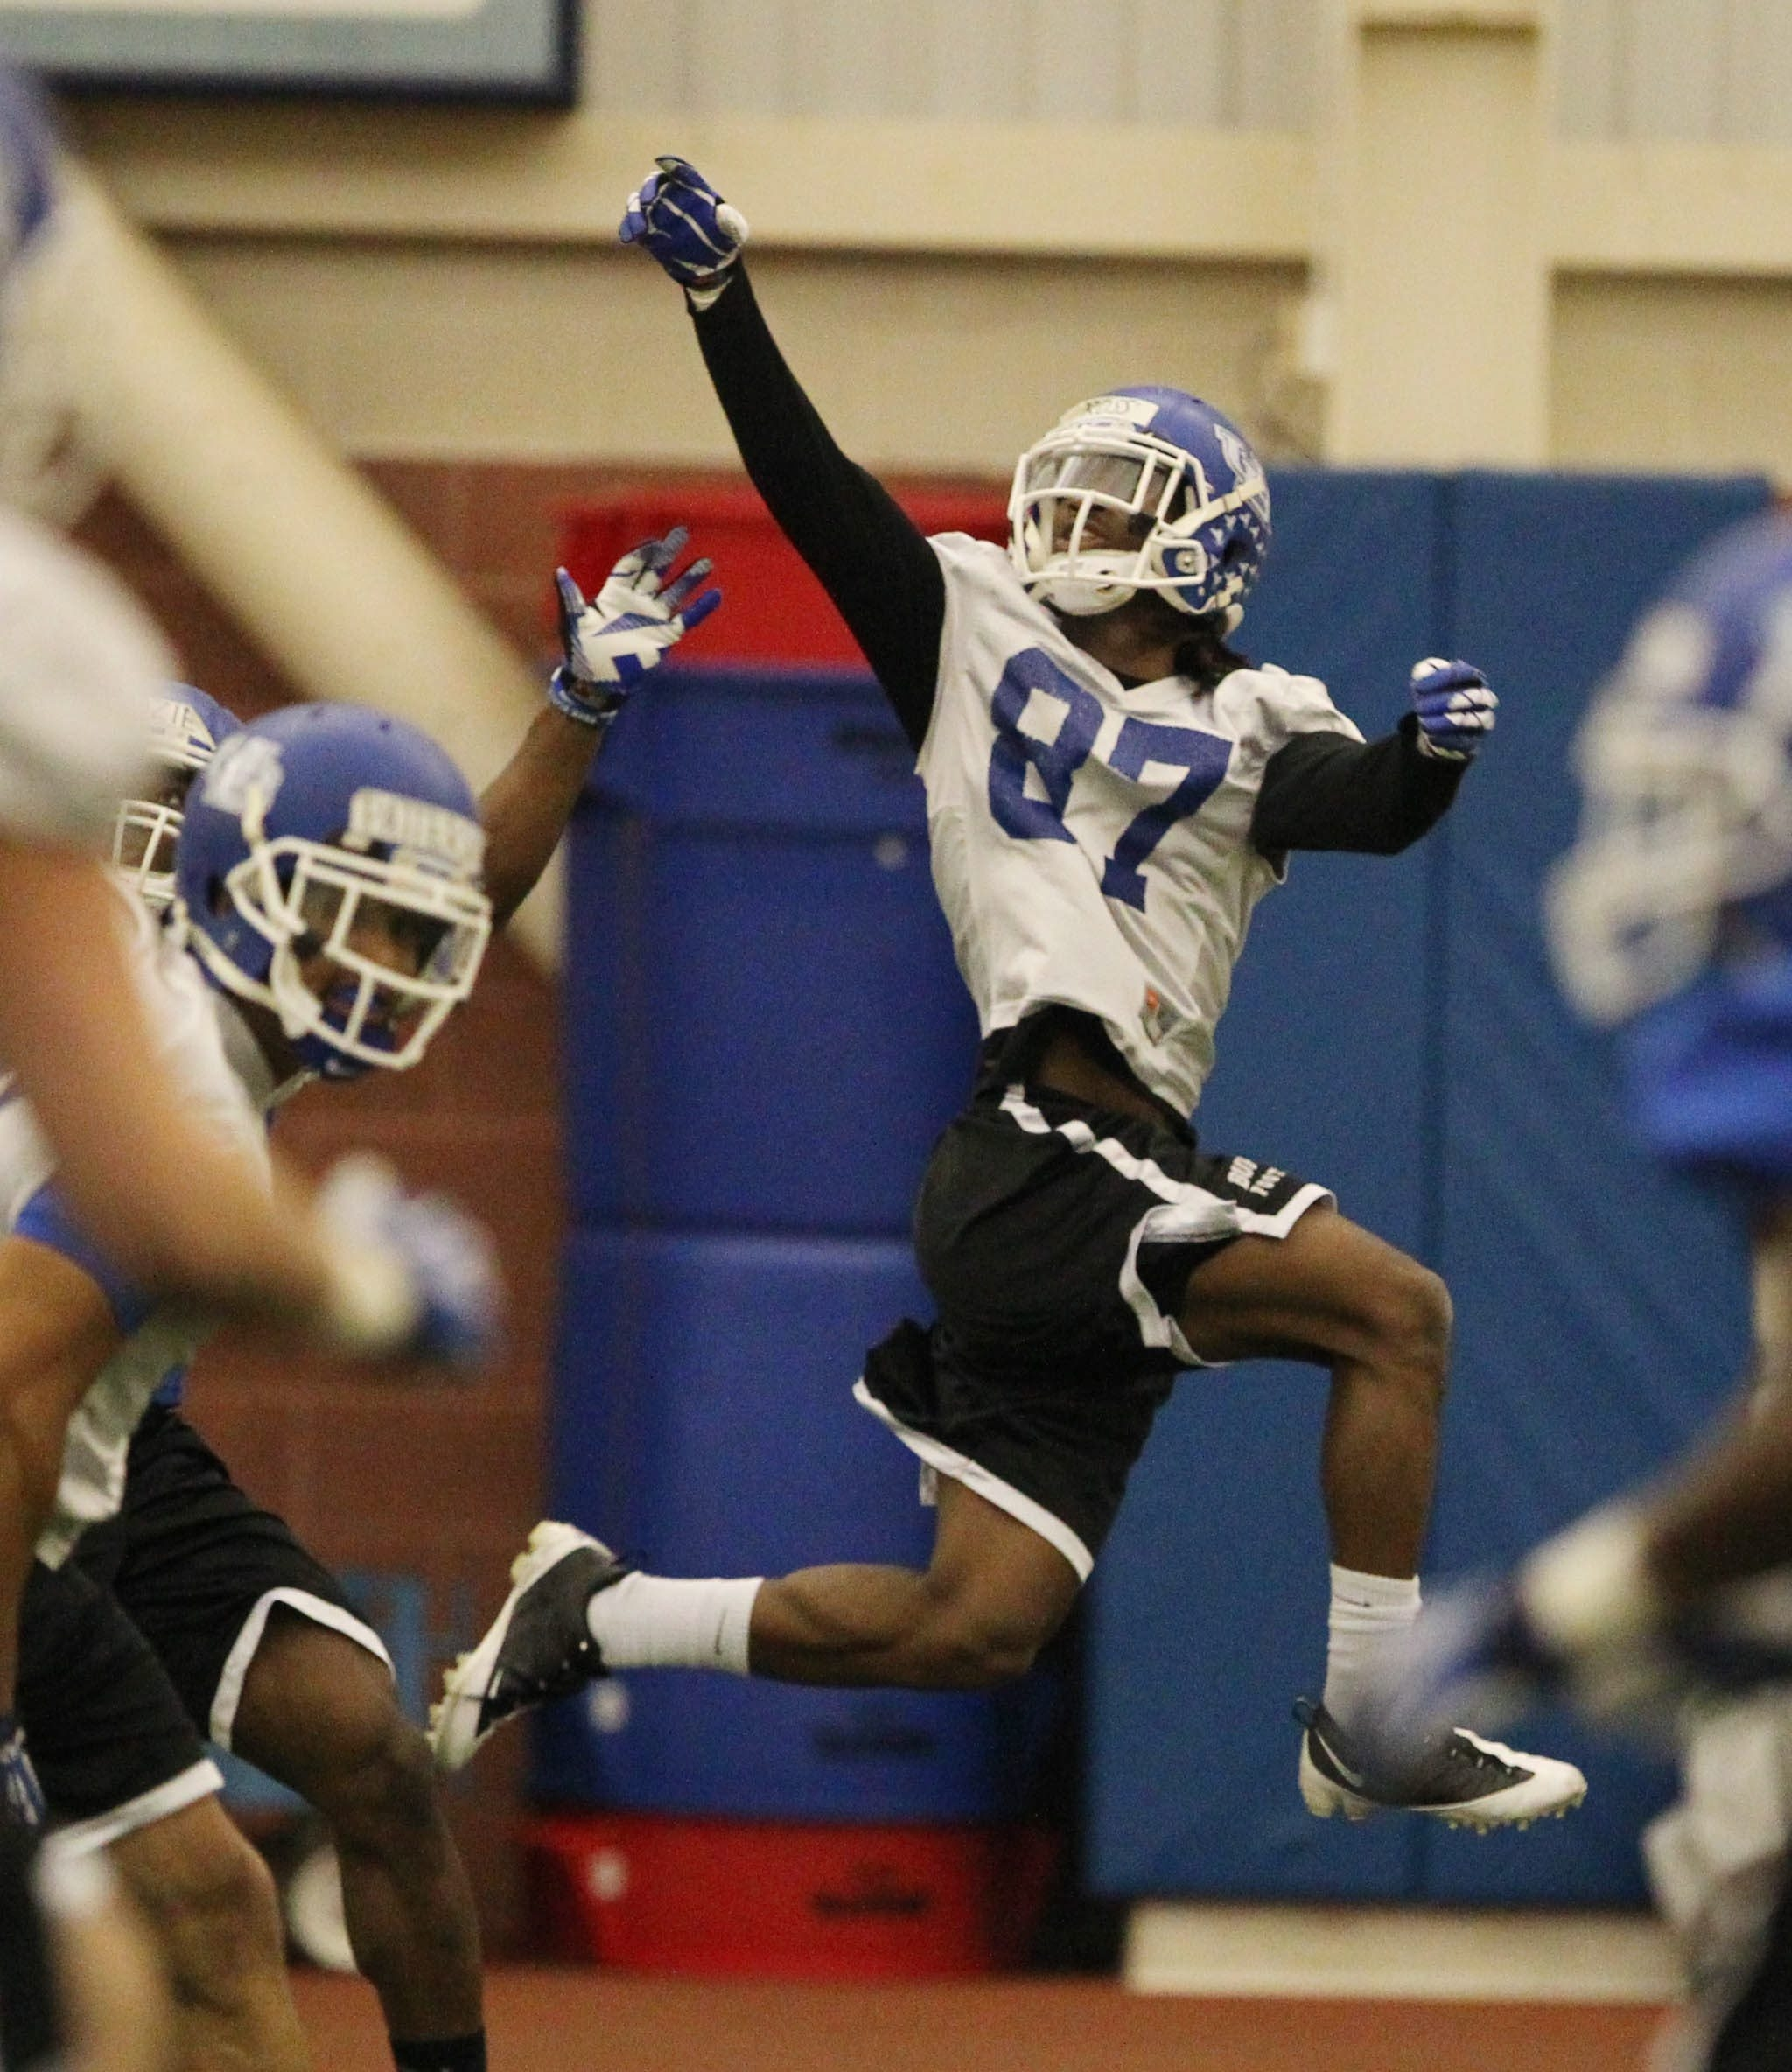 UB wide receiver Boise Ross extends to pull in a pass during the opening day of spring practice.